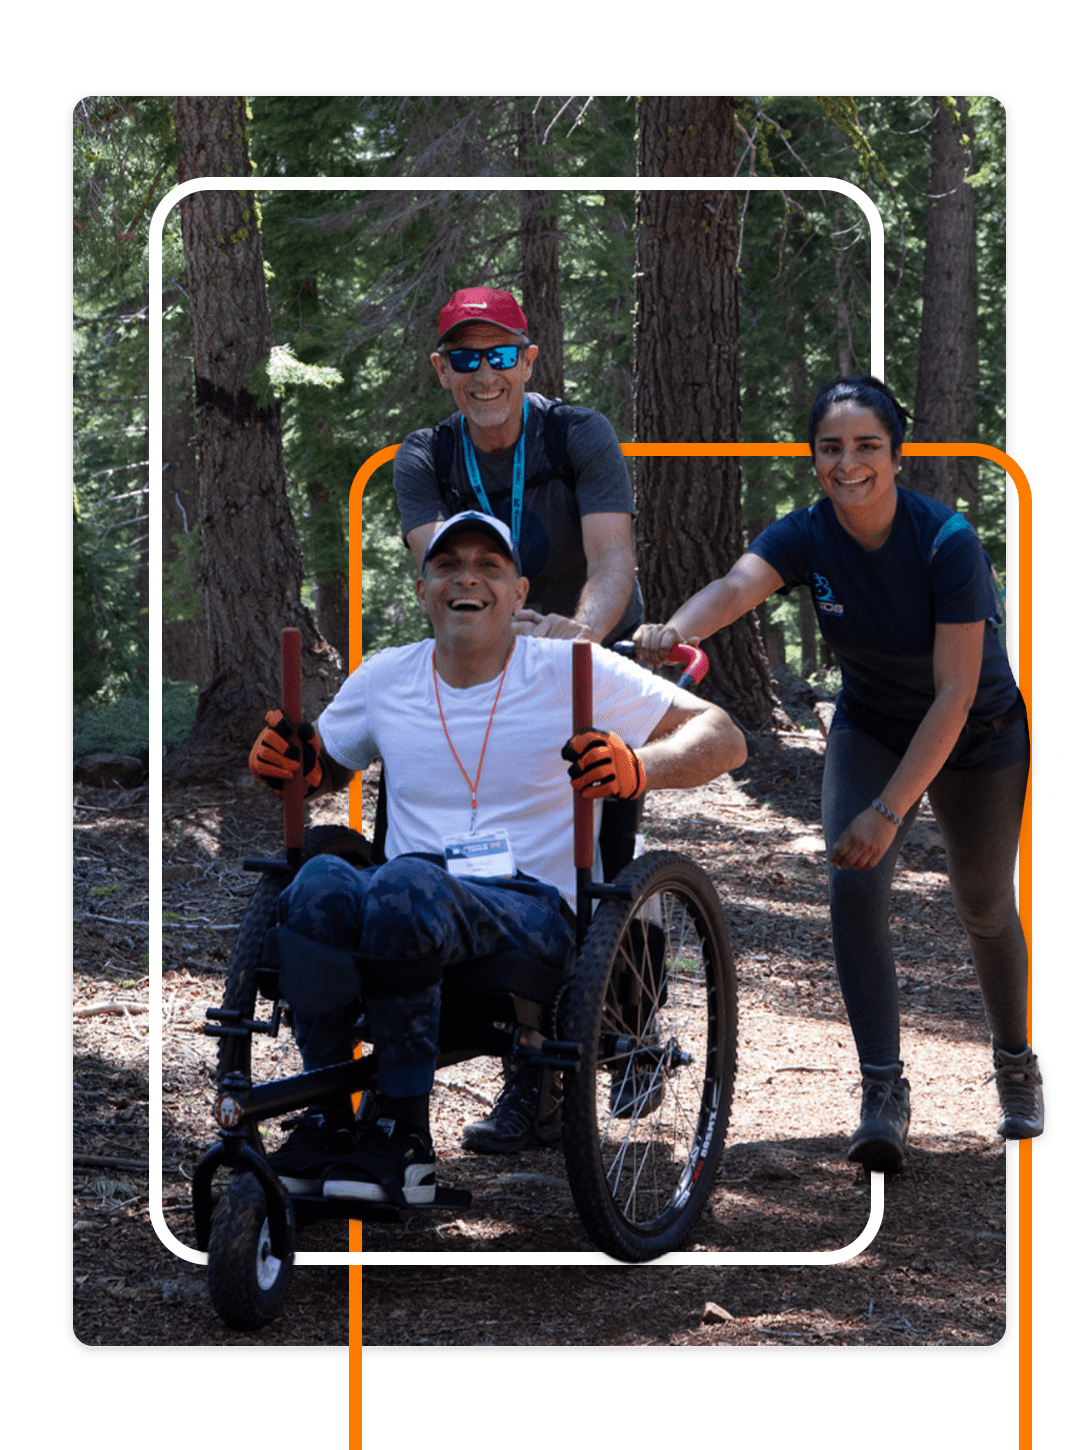 Male adventurer in a wheelchair with his team summiting challenging climb